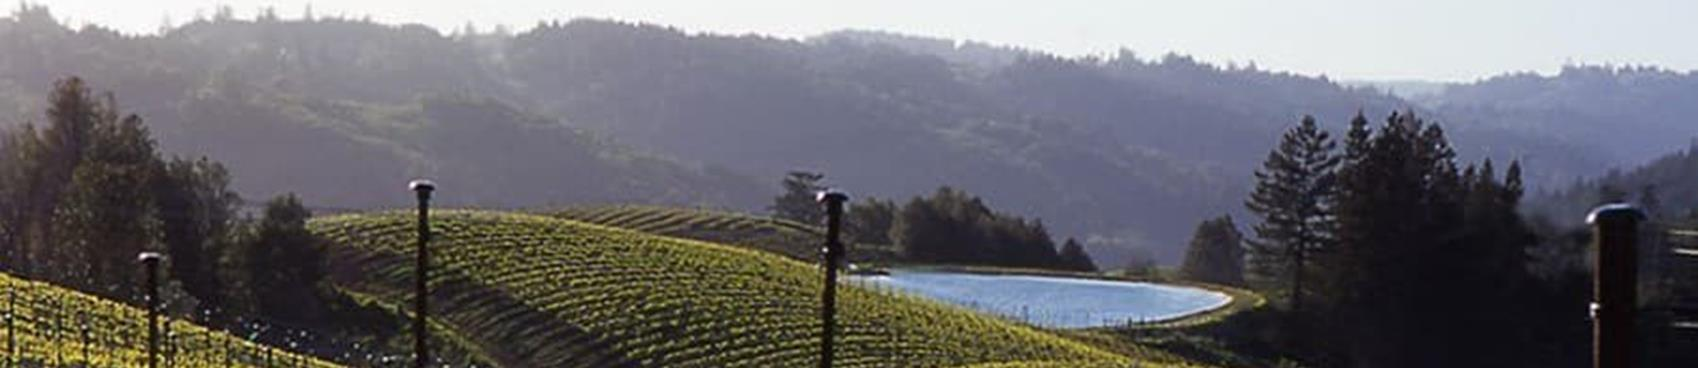 A image of Fort Ross Vineyard Tasting Room